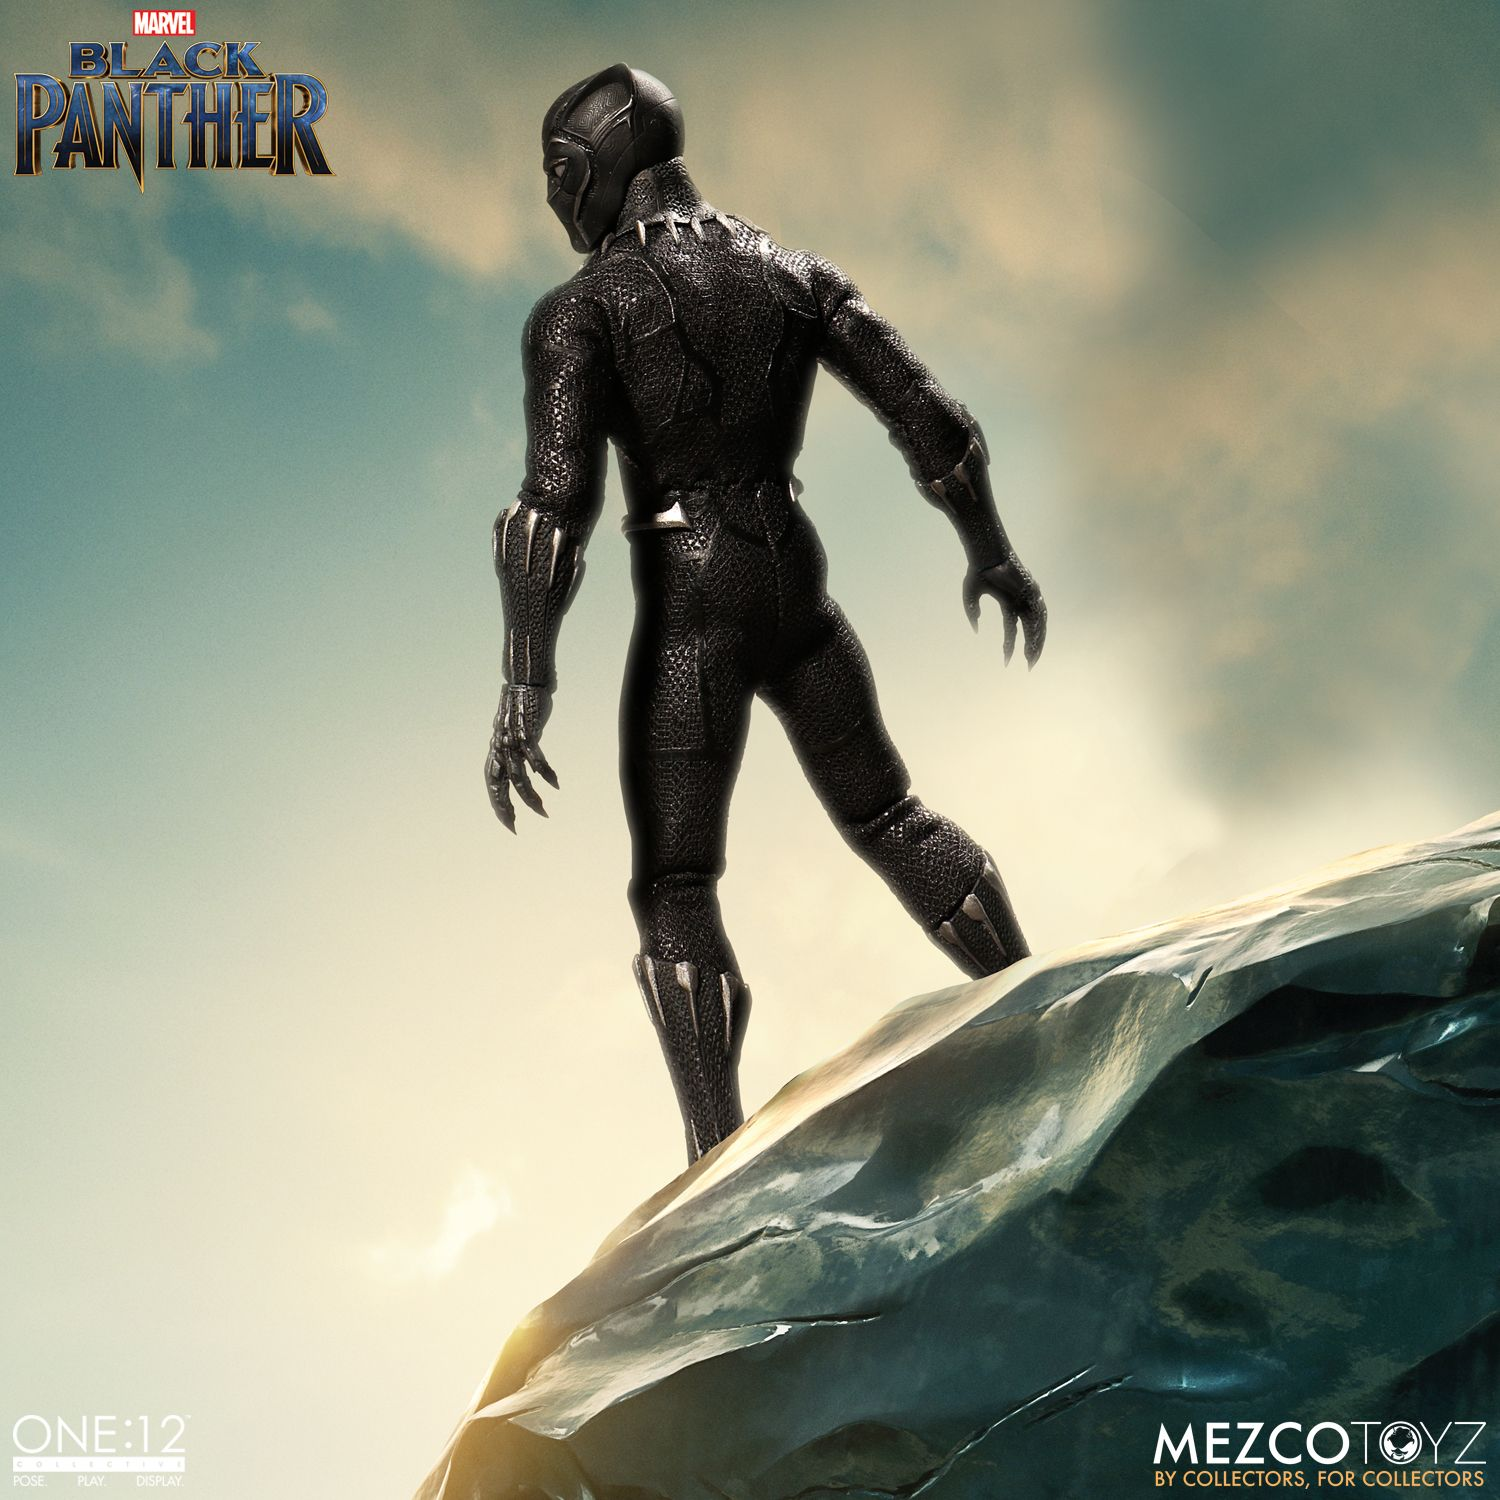 black panther mezco one 12 figure 1